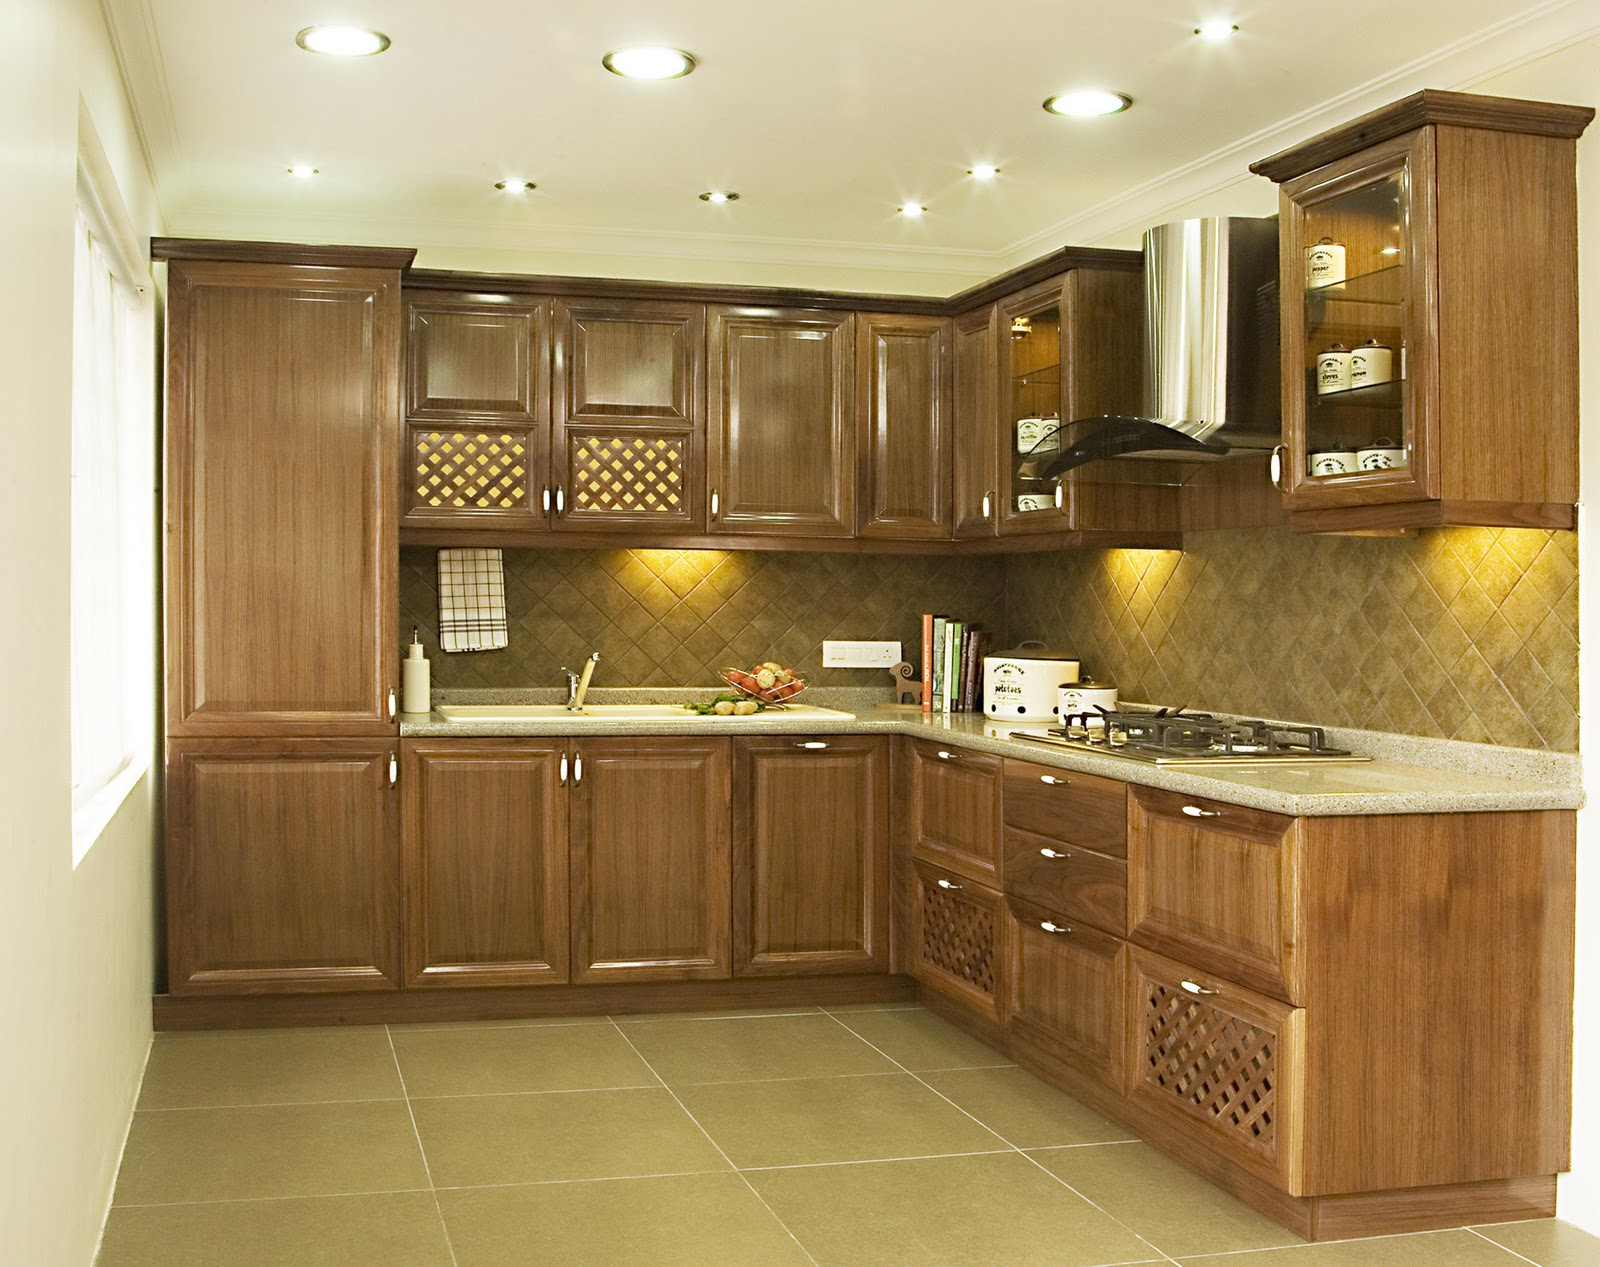 Press Release Watch Showcase Of Kitchen Design By Oaktree Kitchens